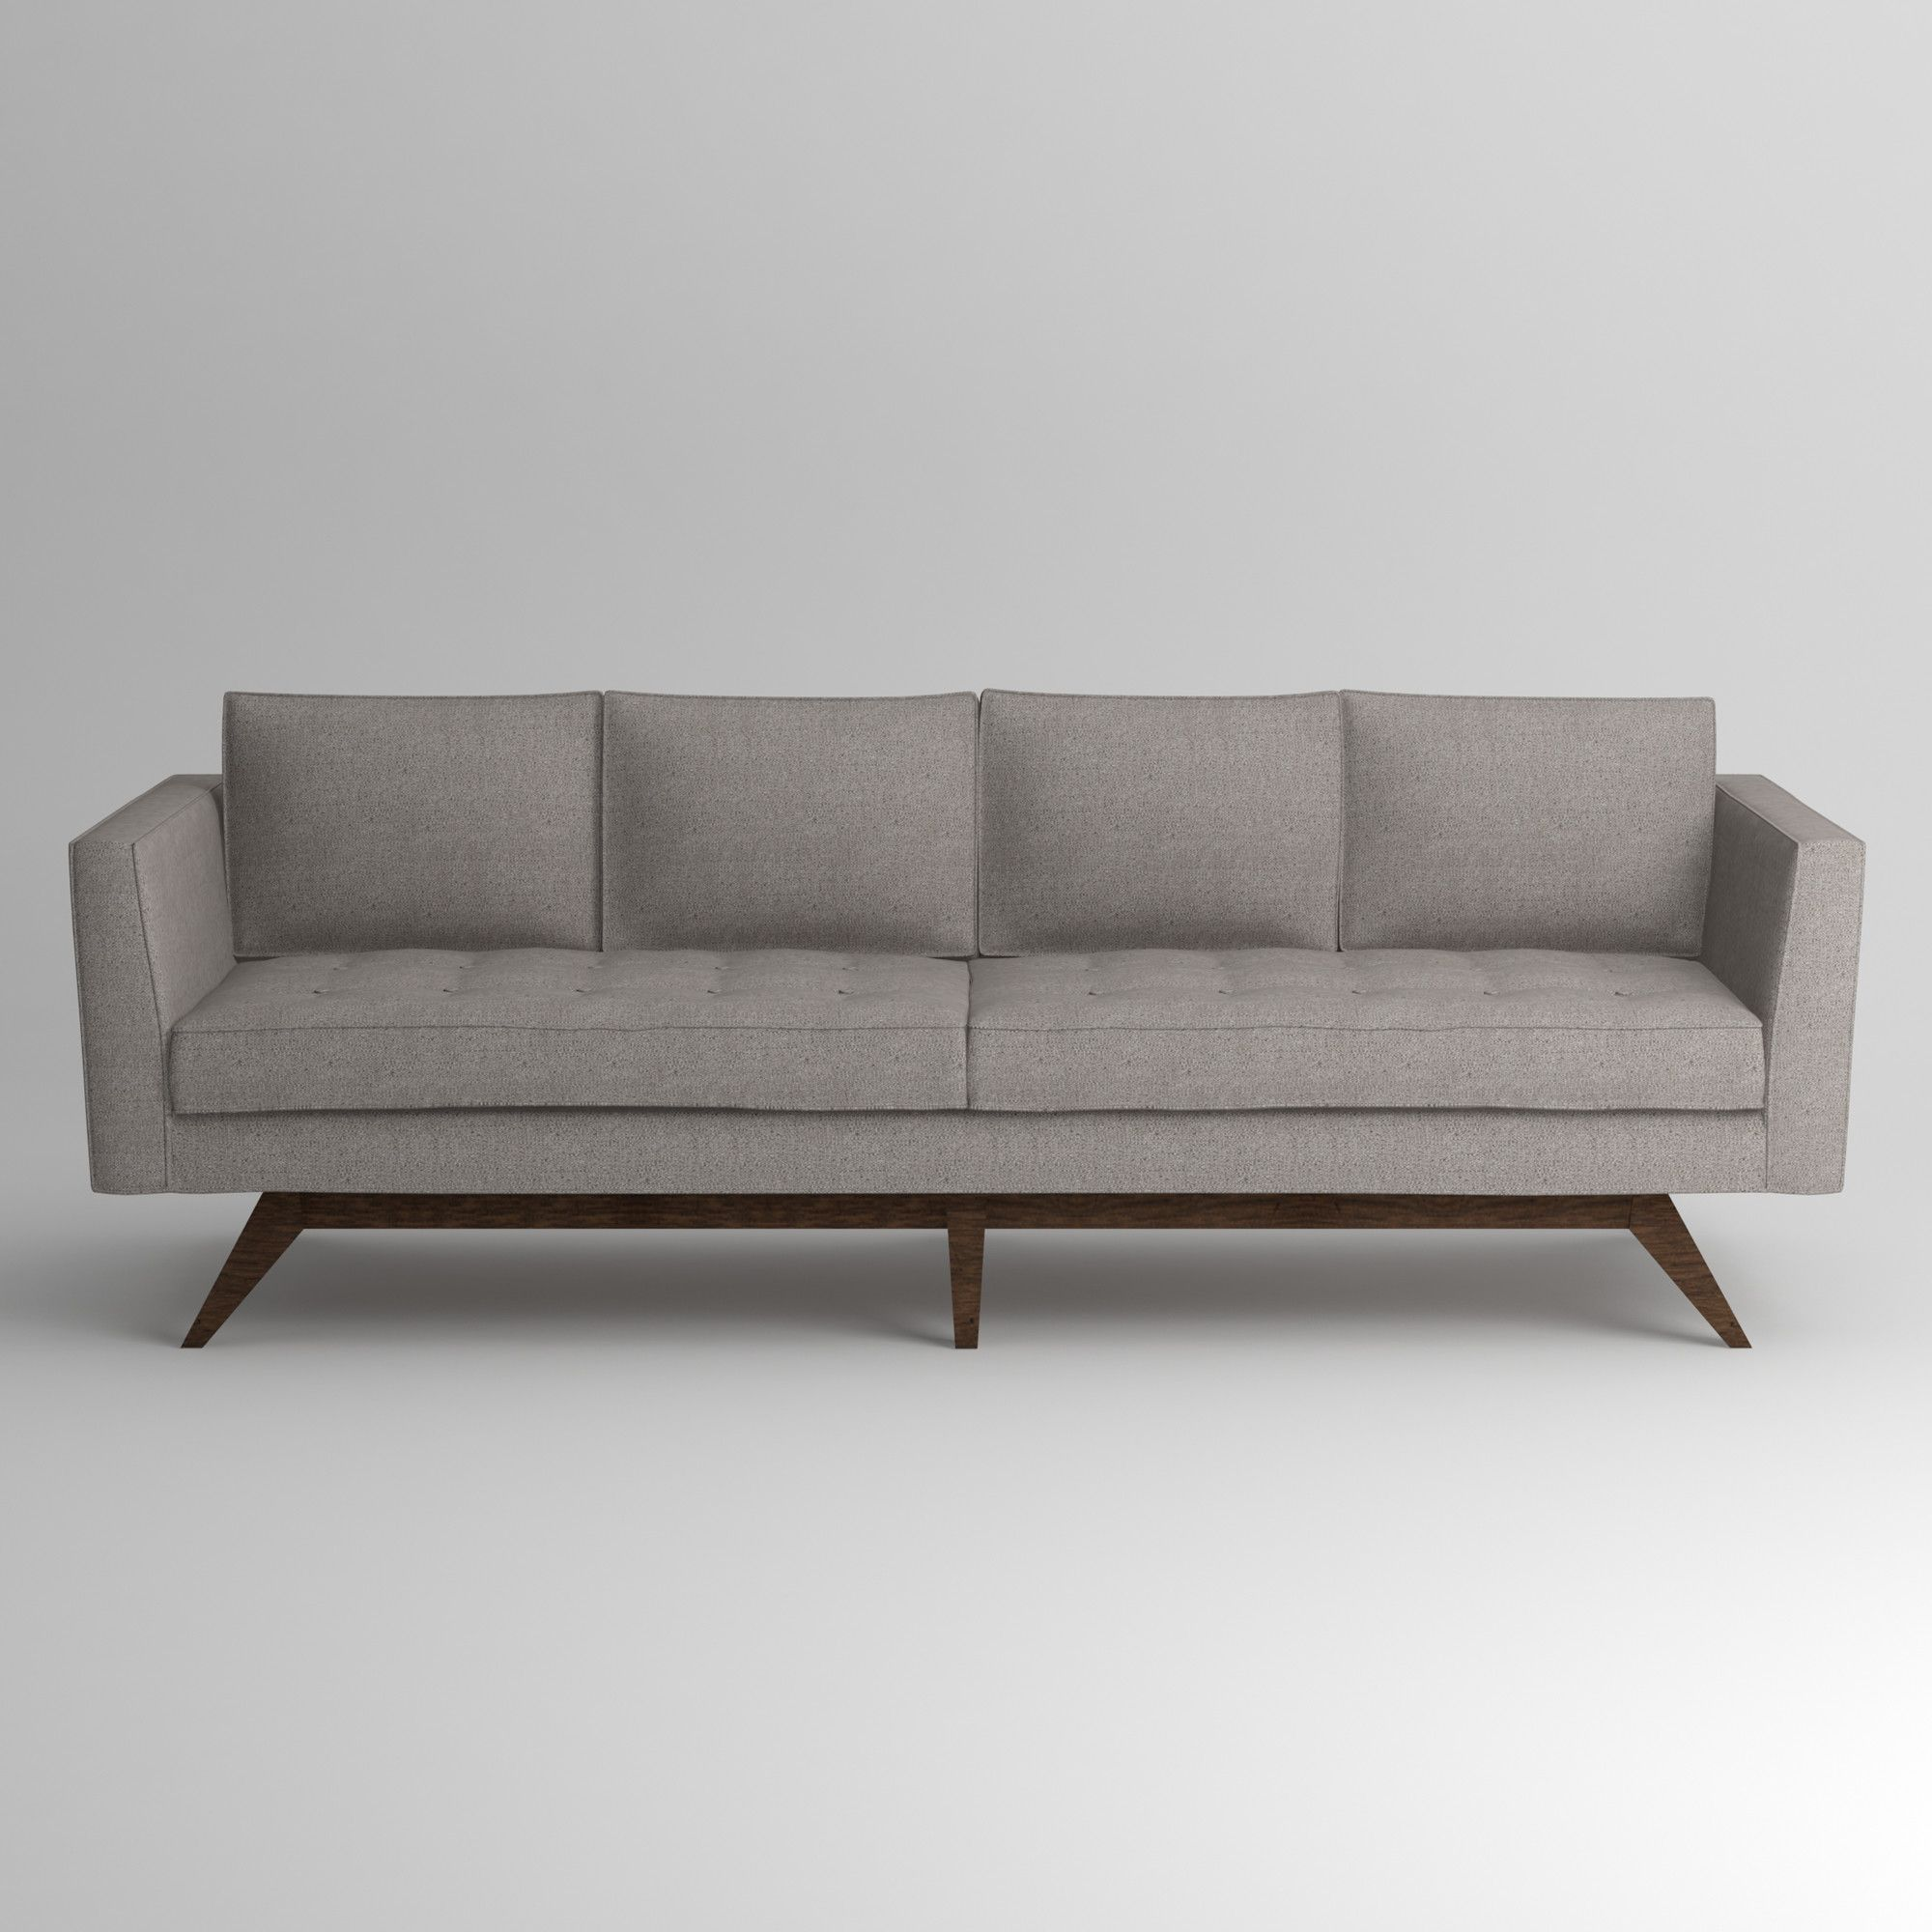 Attirant Fairfax Sofa U0026 Reviews | AllModern